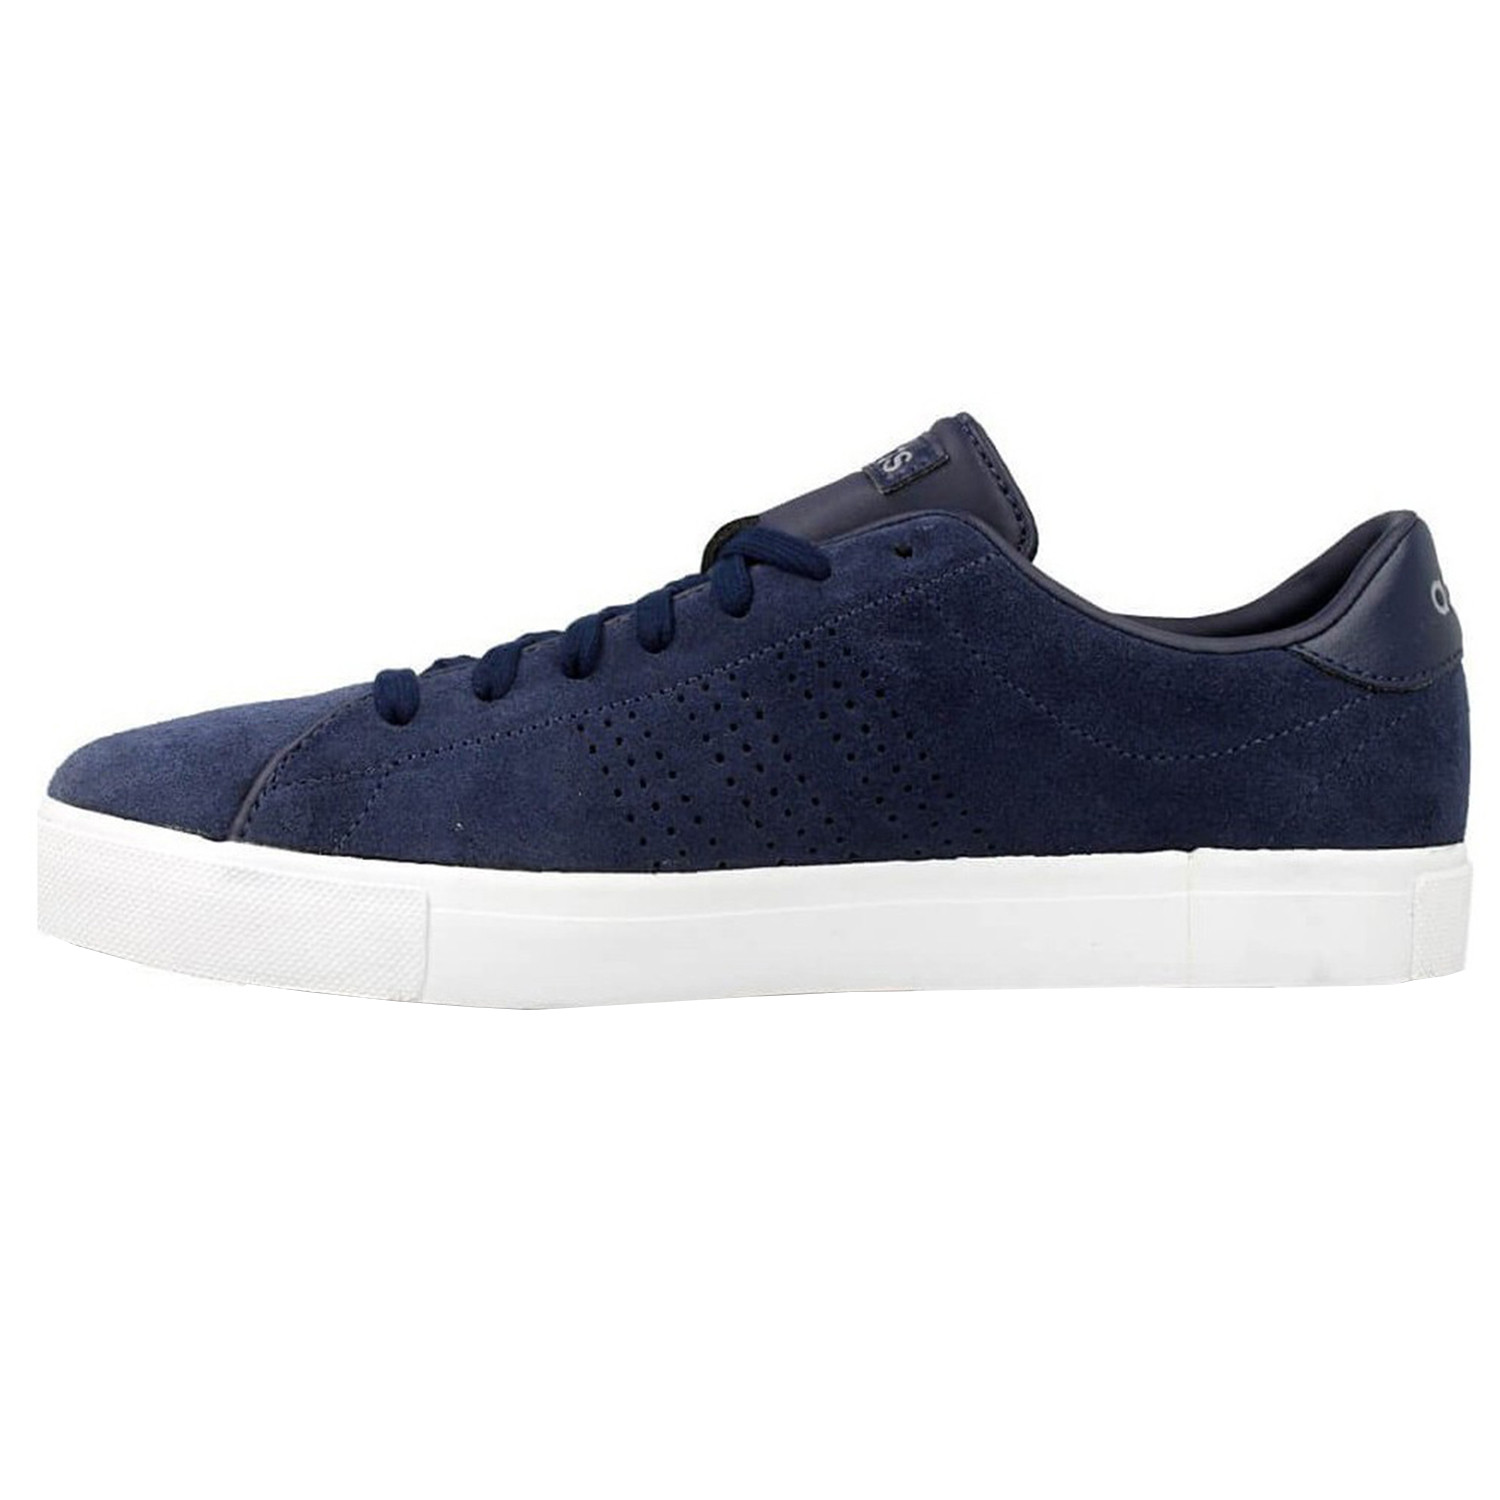 Ouvert Sandales Line Femme Basses Bout Adidas Daily Baskets nq6xavS